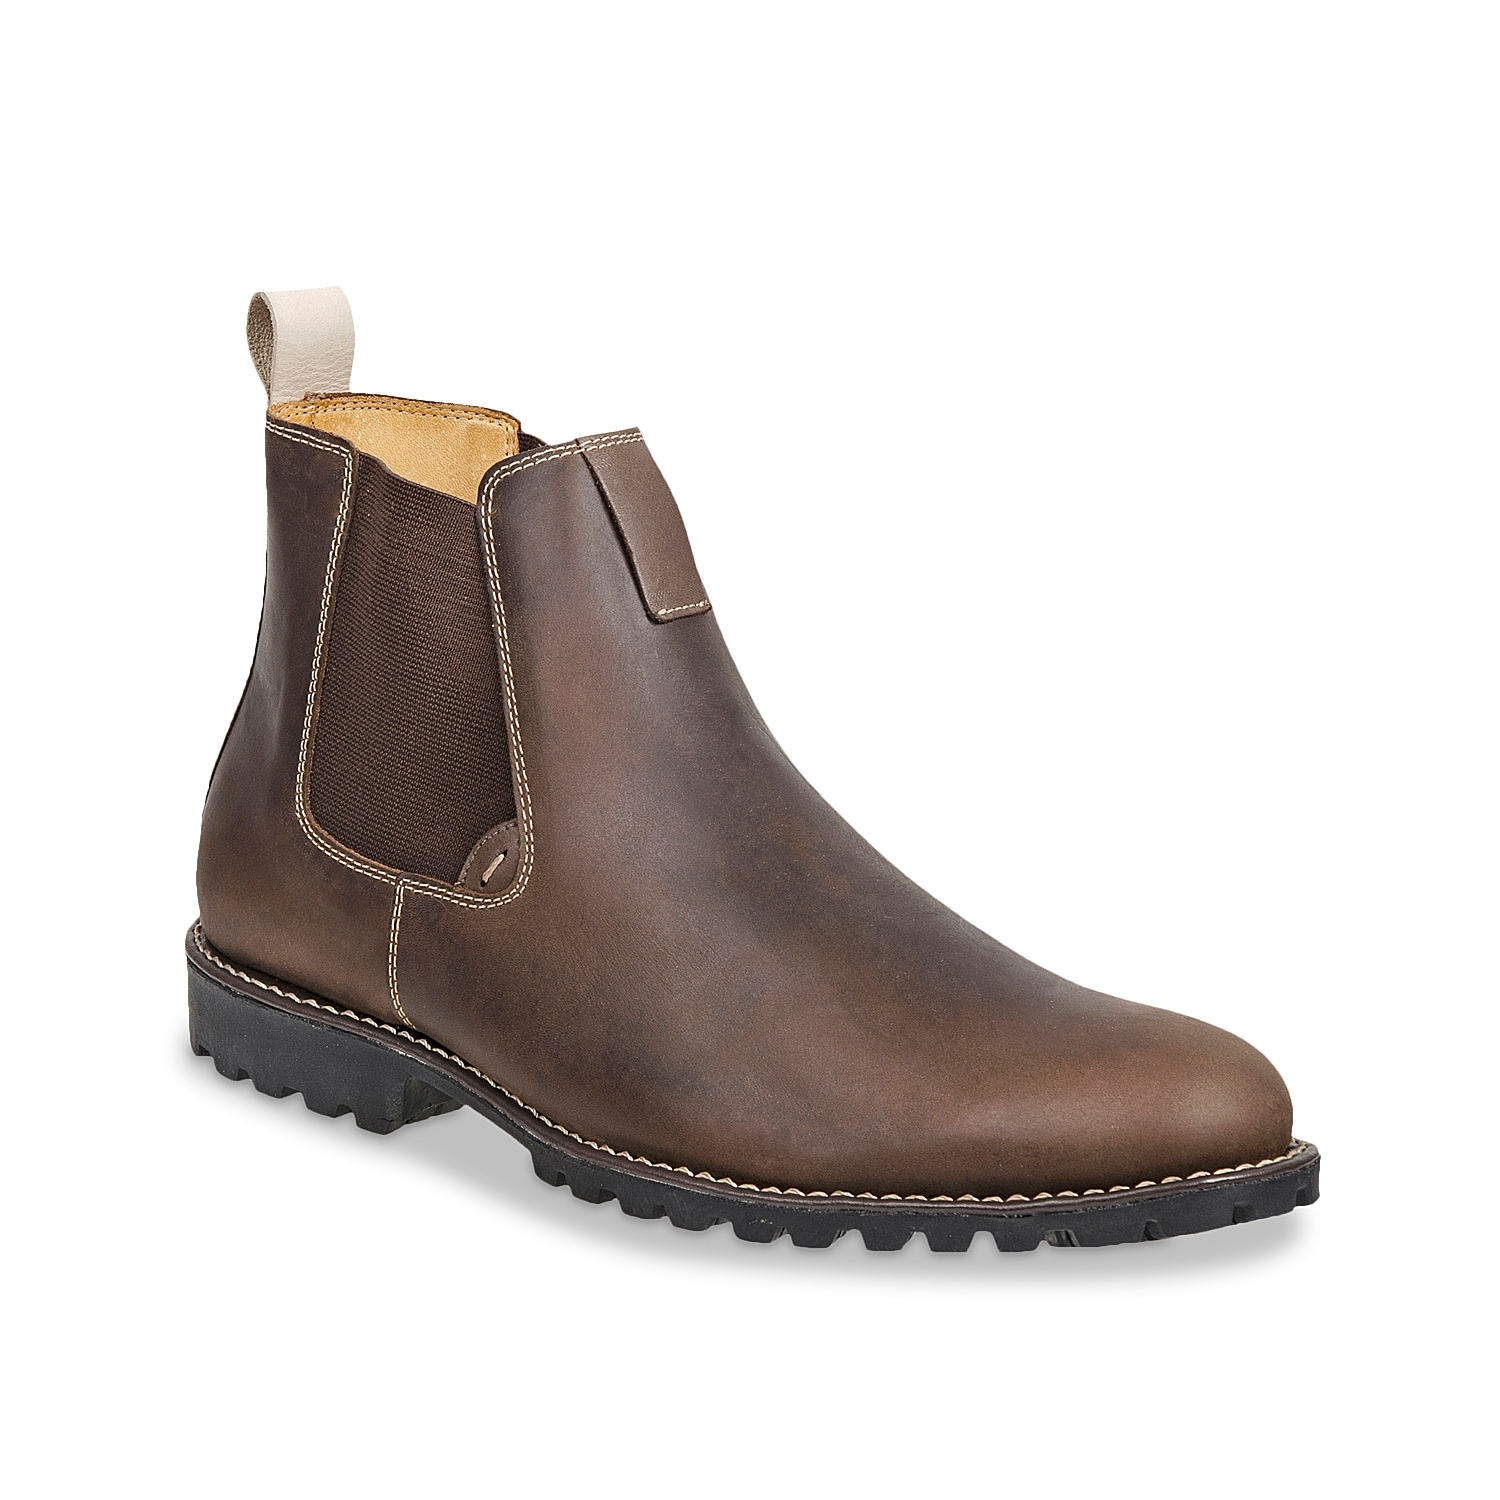 Give your shoe collection a rugged look with the Wilbur boot from Sandro Moscoloni. This fresh pair features a leather upper and Chelsea-inspired styling for a dapper finishing touch!